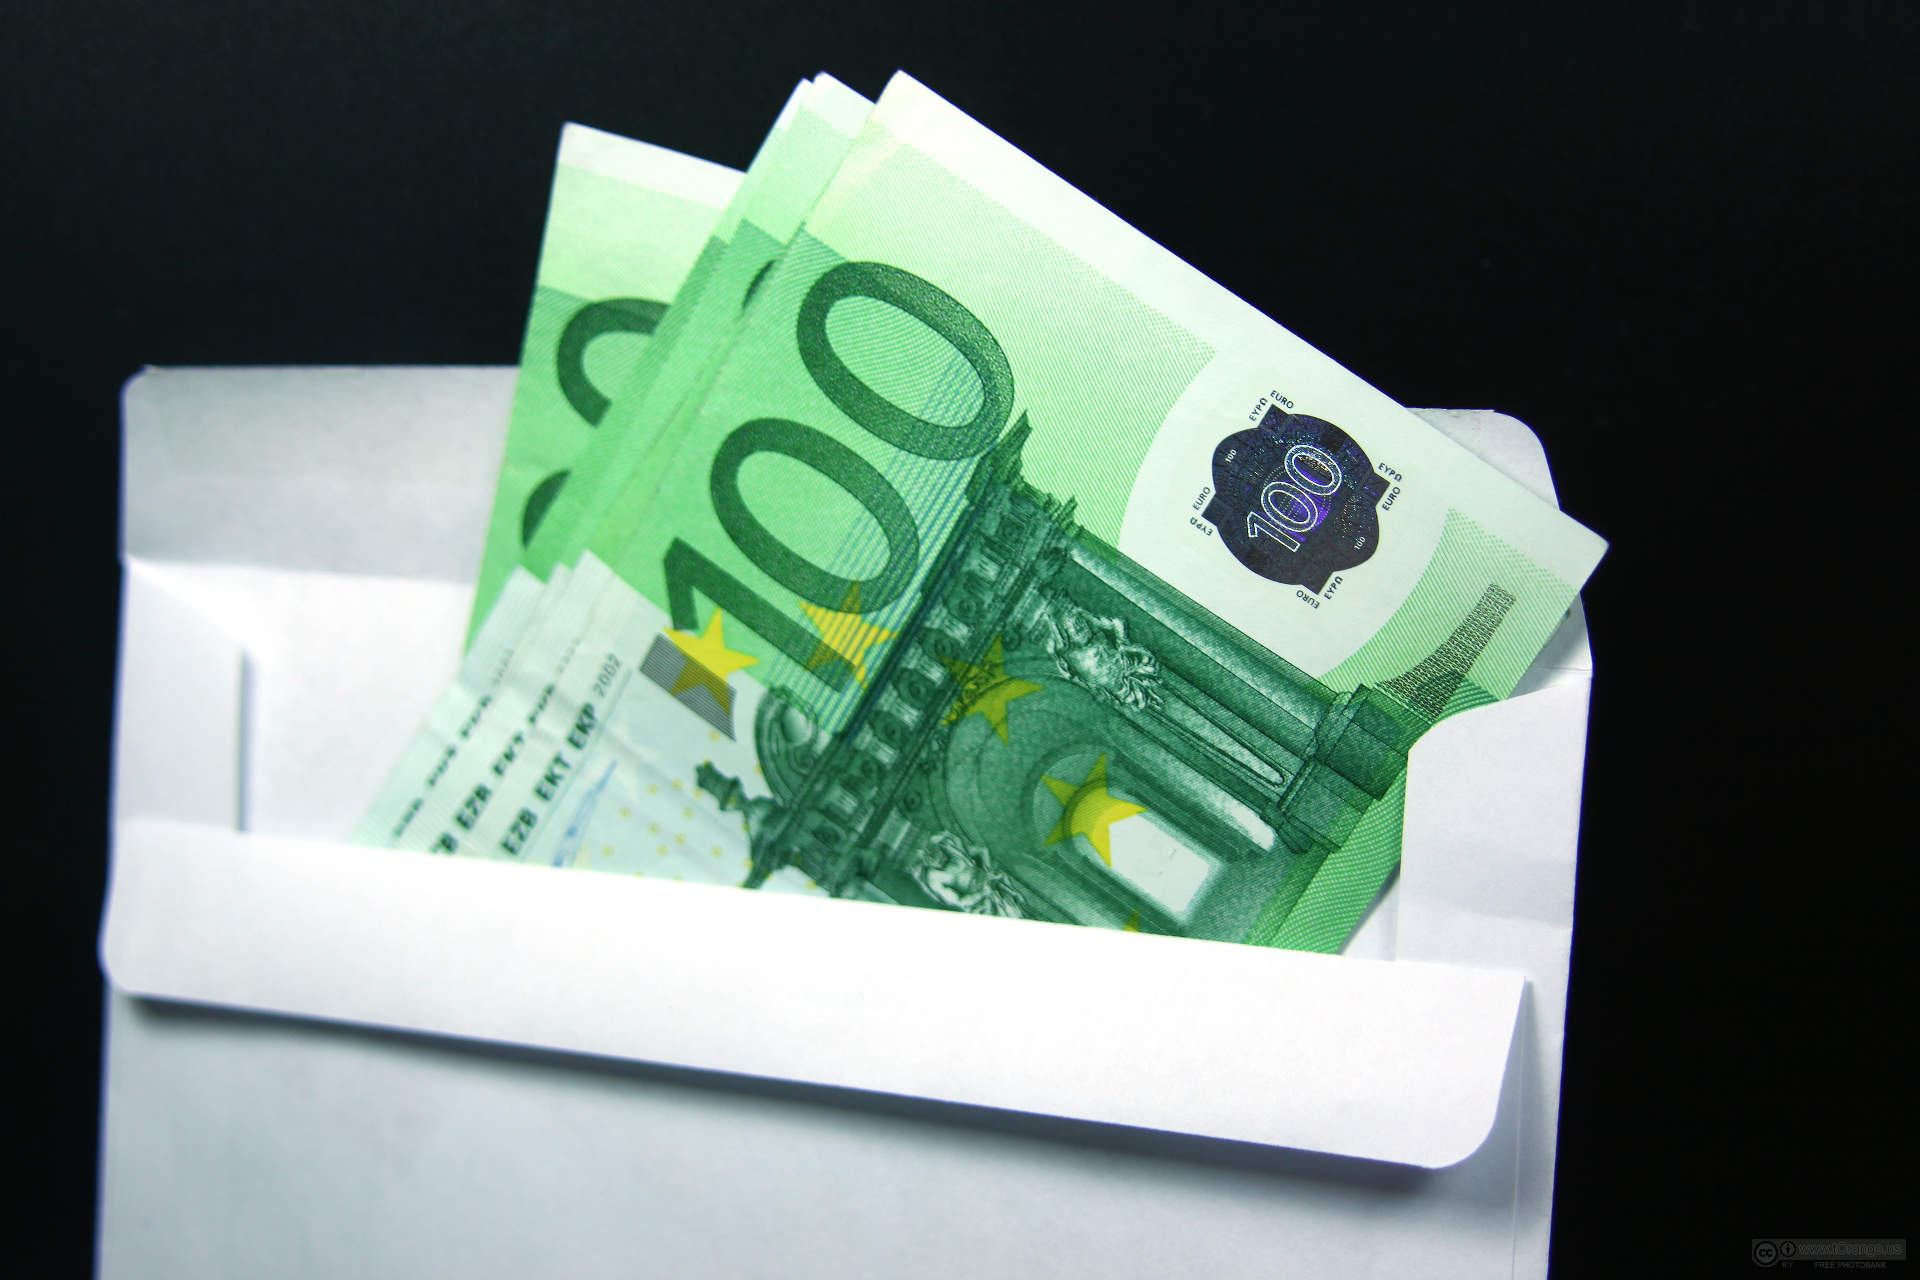 Payment Cash (cash currency). Euros in an envelope.